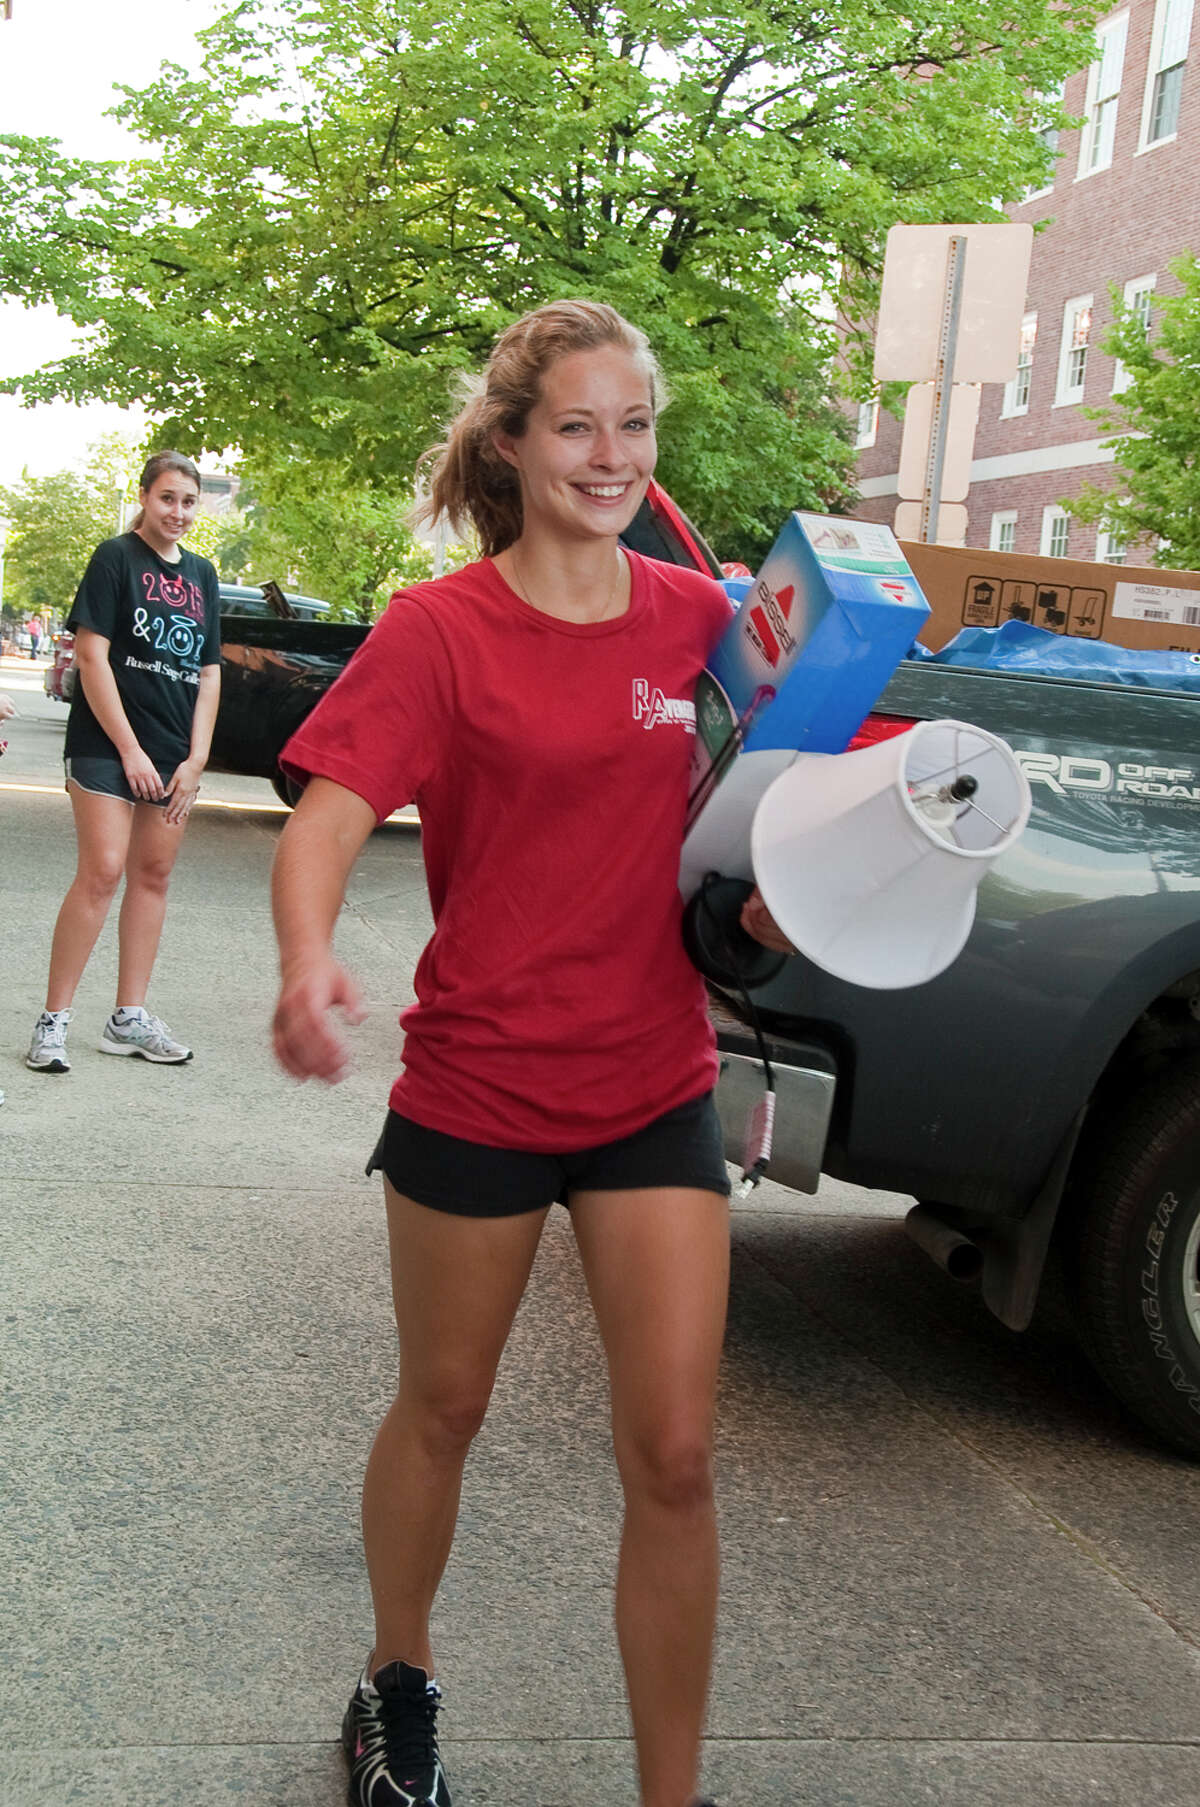 Were you Seen moving on campus at The Sage Colleges on Thursday, Aug. 23, 2012?